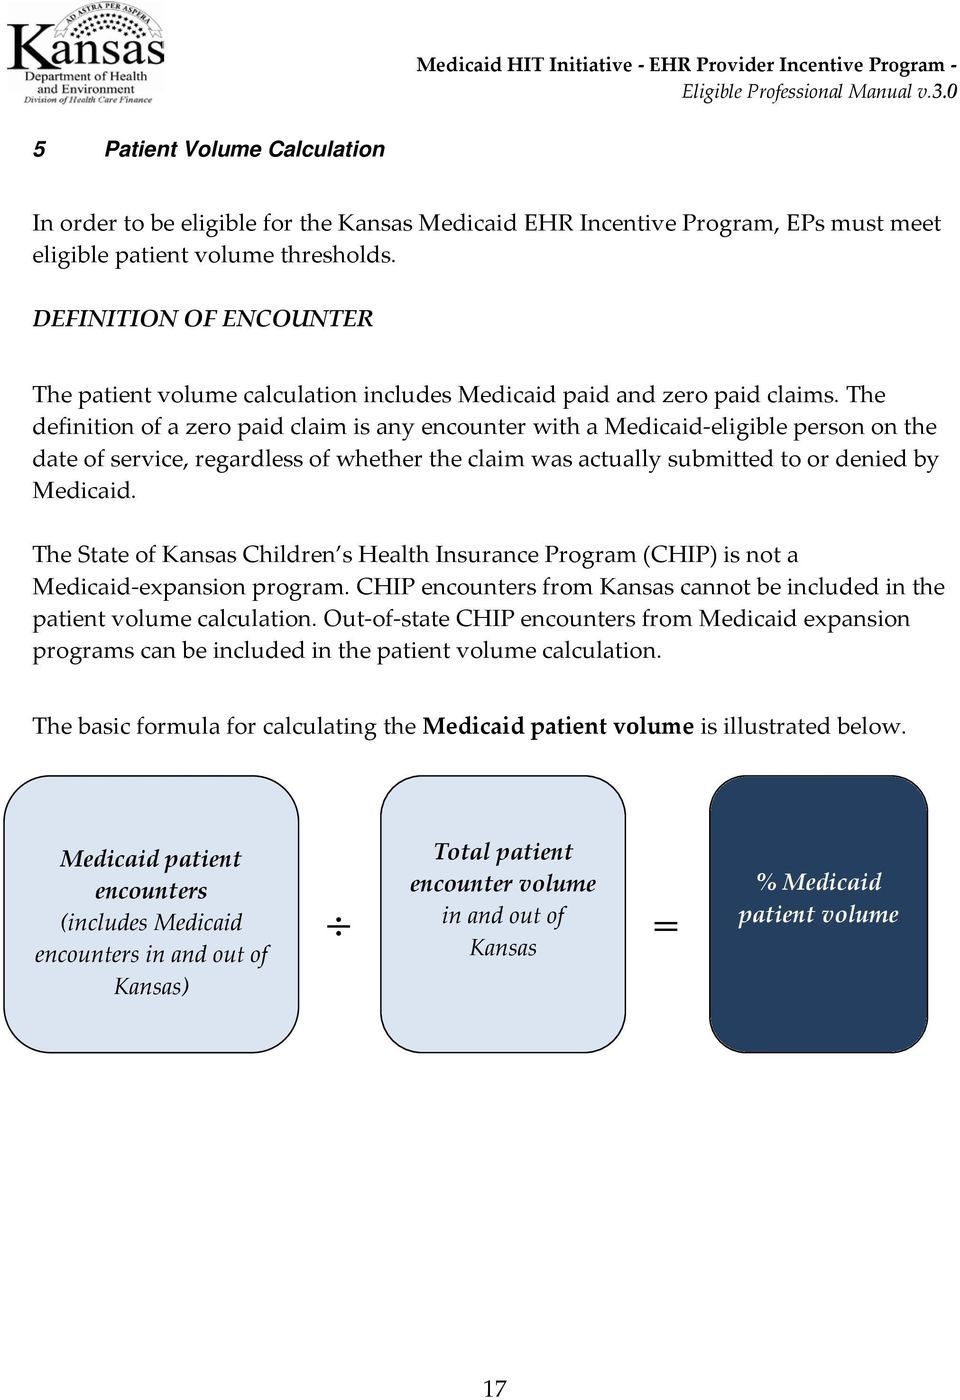 The definition of a zero paid claim is any encounter with a Medicaid-eligible person on the date of service, regardless of whether the claim was actually submitted to or denied by Medicaid.